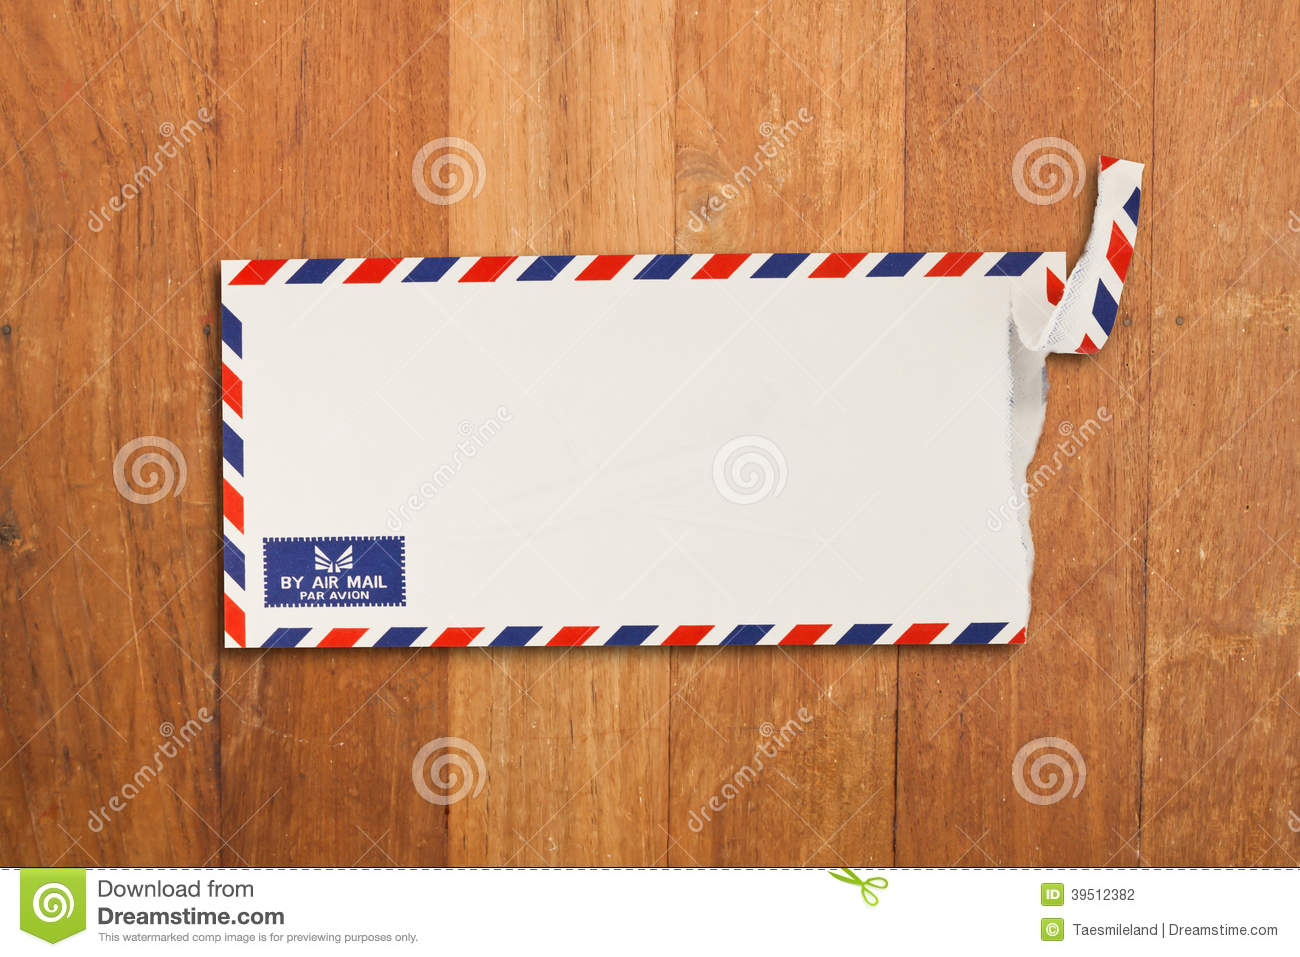 Envelope by air mail